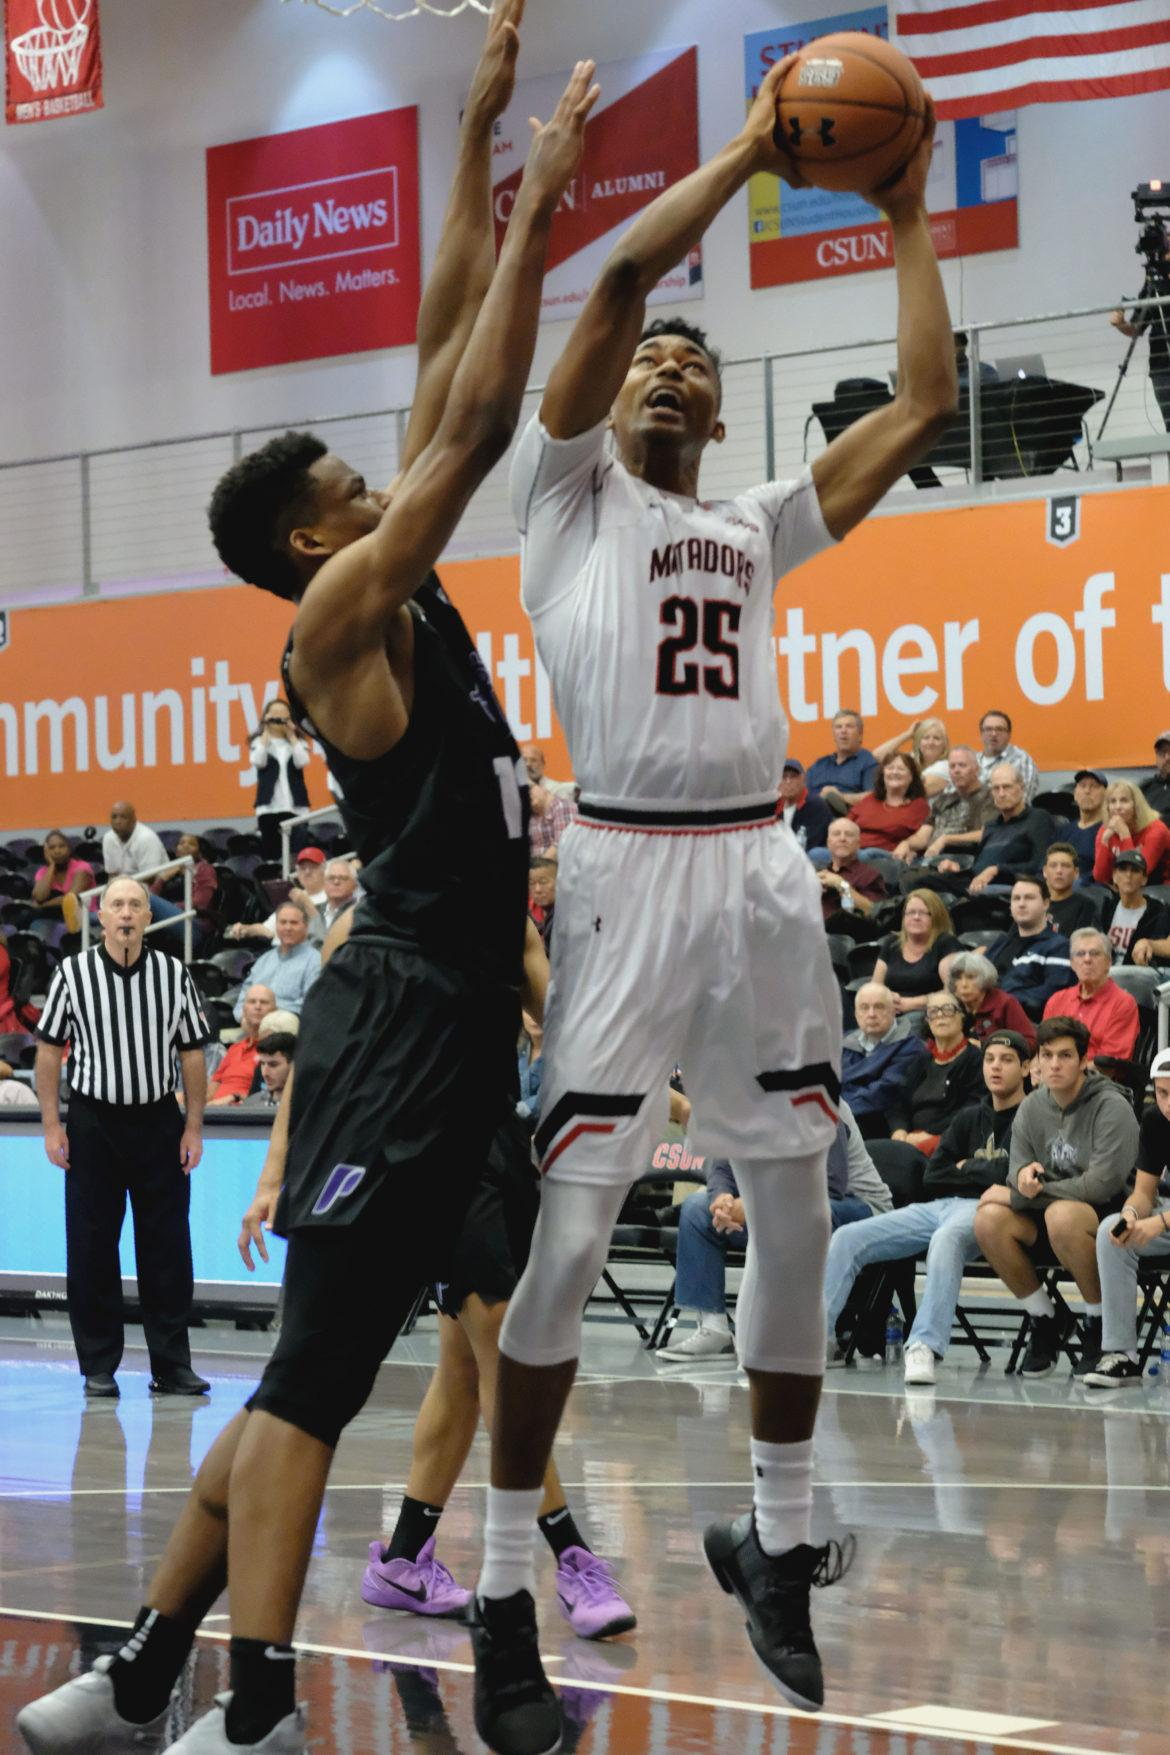 CSUNs Jared Pearre goes up for a bucket against a Portland defender. Photo credit: Jose Morales